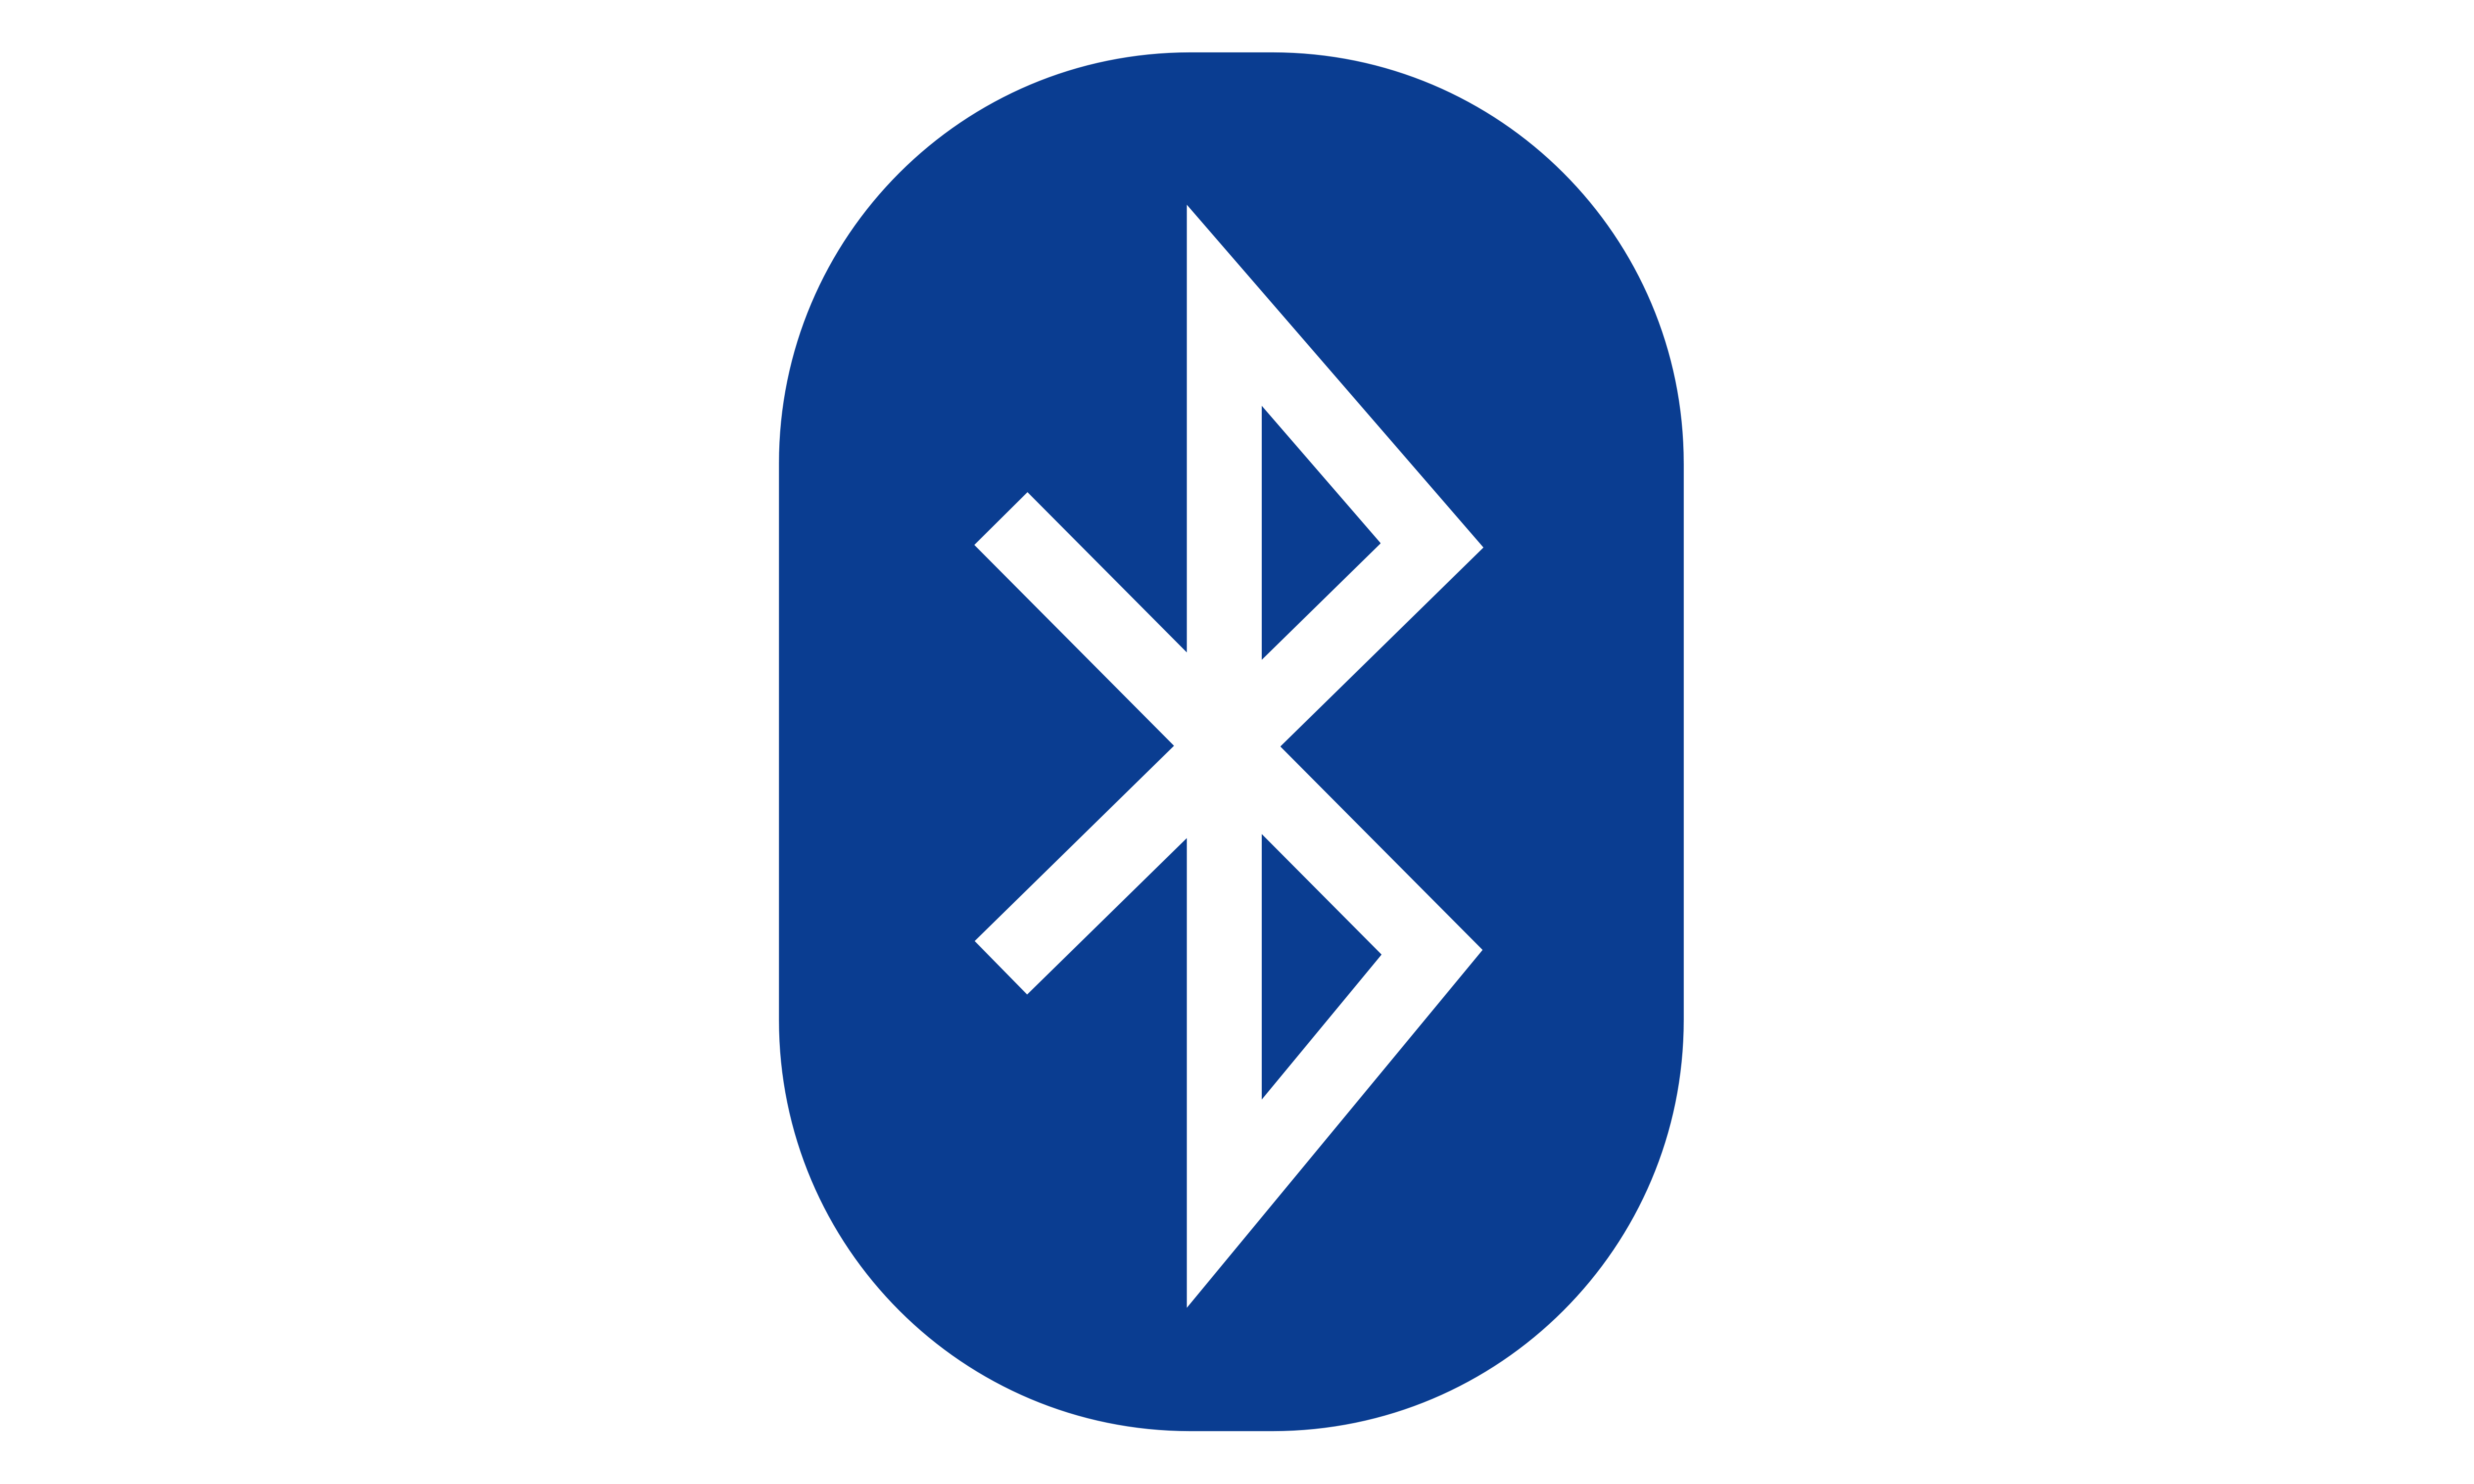 Disabling the built in bluetooth and use a USB adaptor instead (on